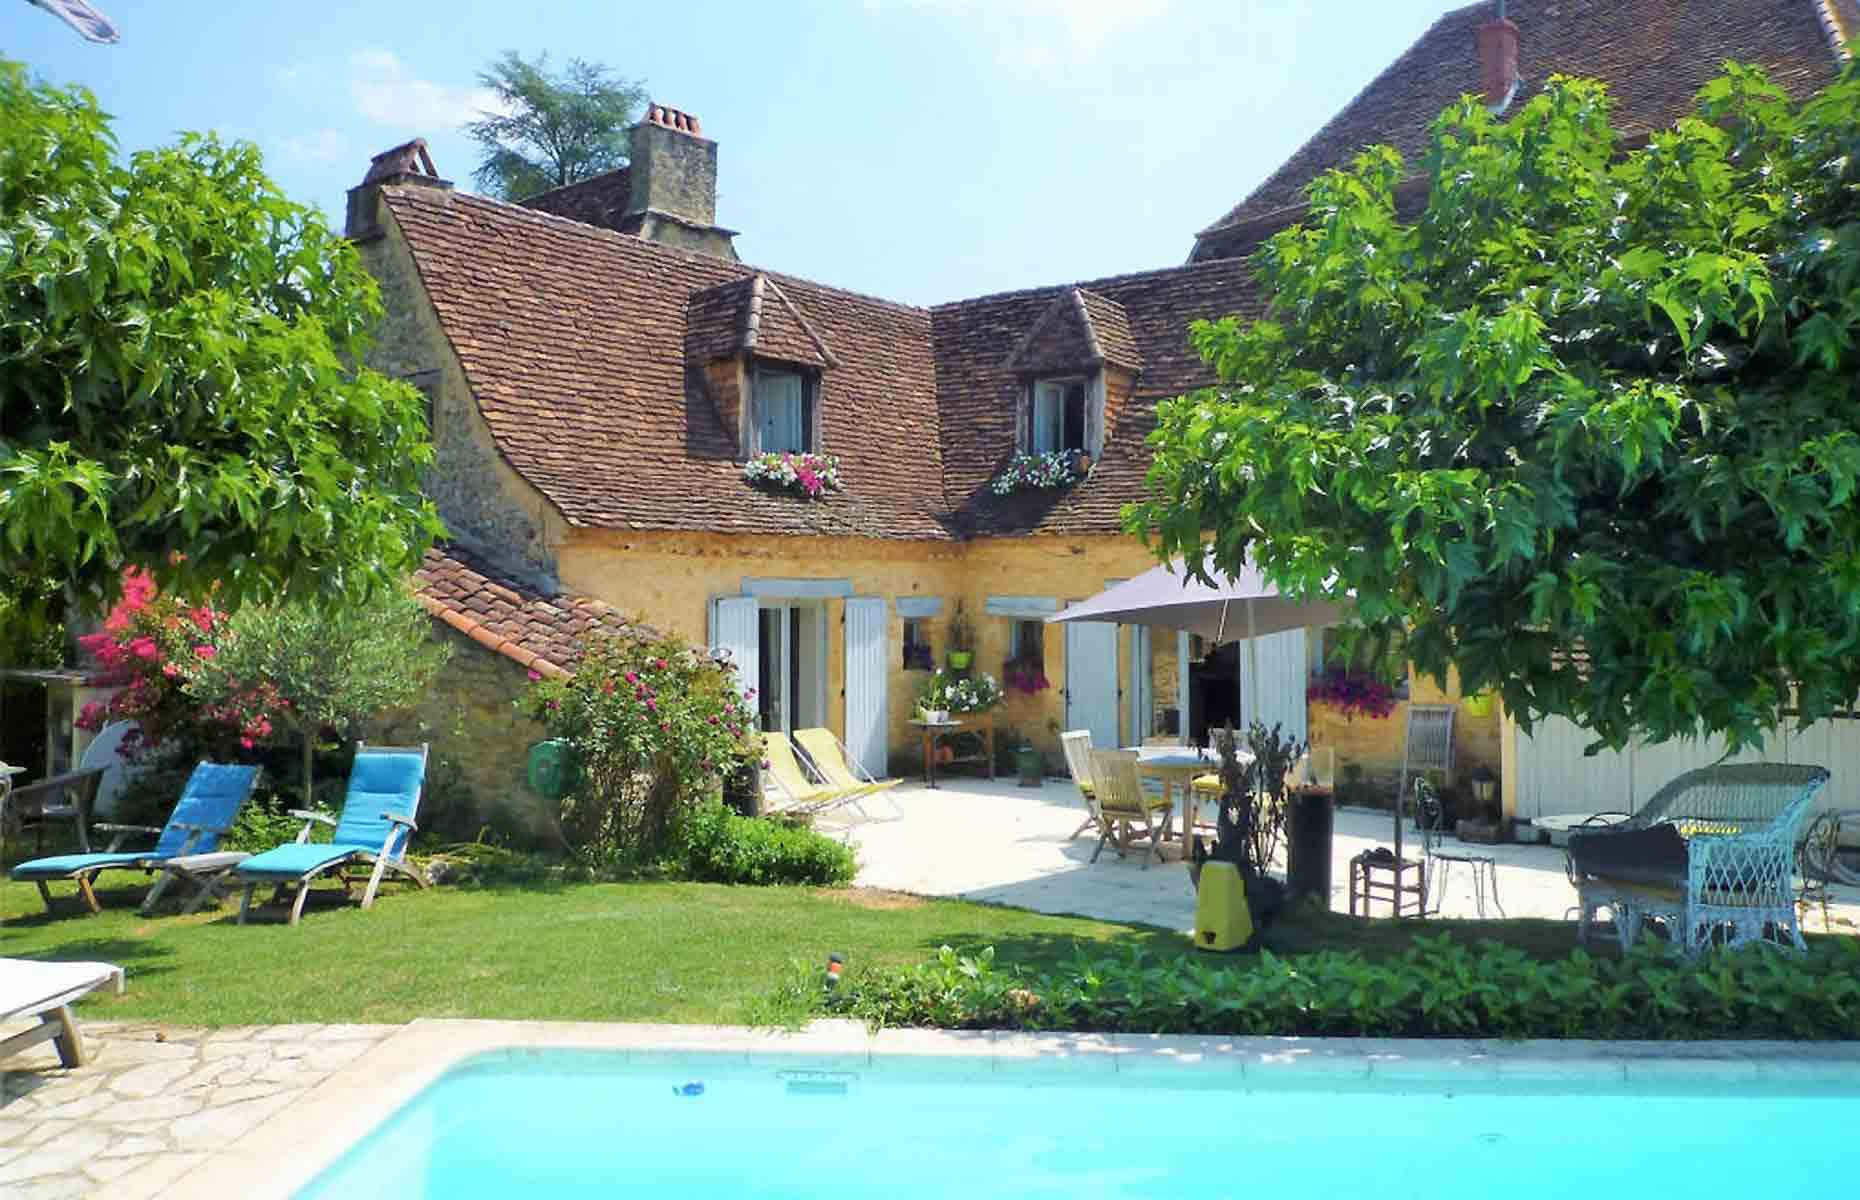 Complete with quaint window shutters, this period property is a picture-perfect escape. Image: Pioneer France